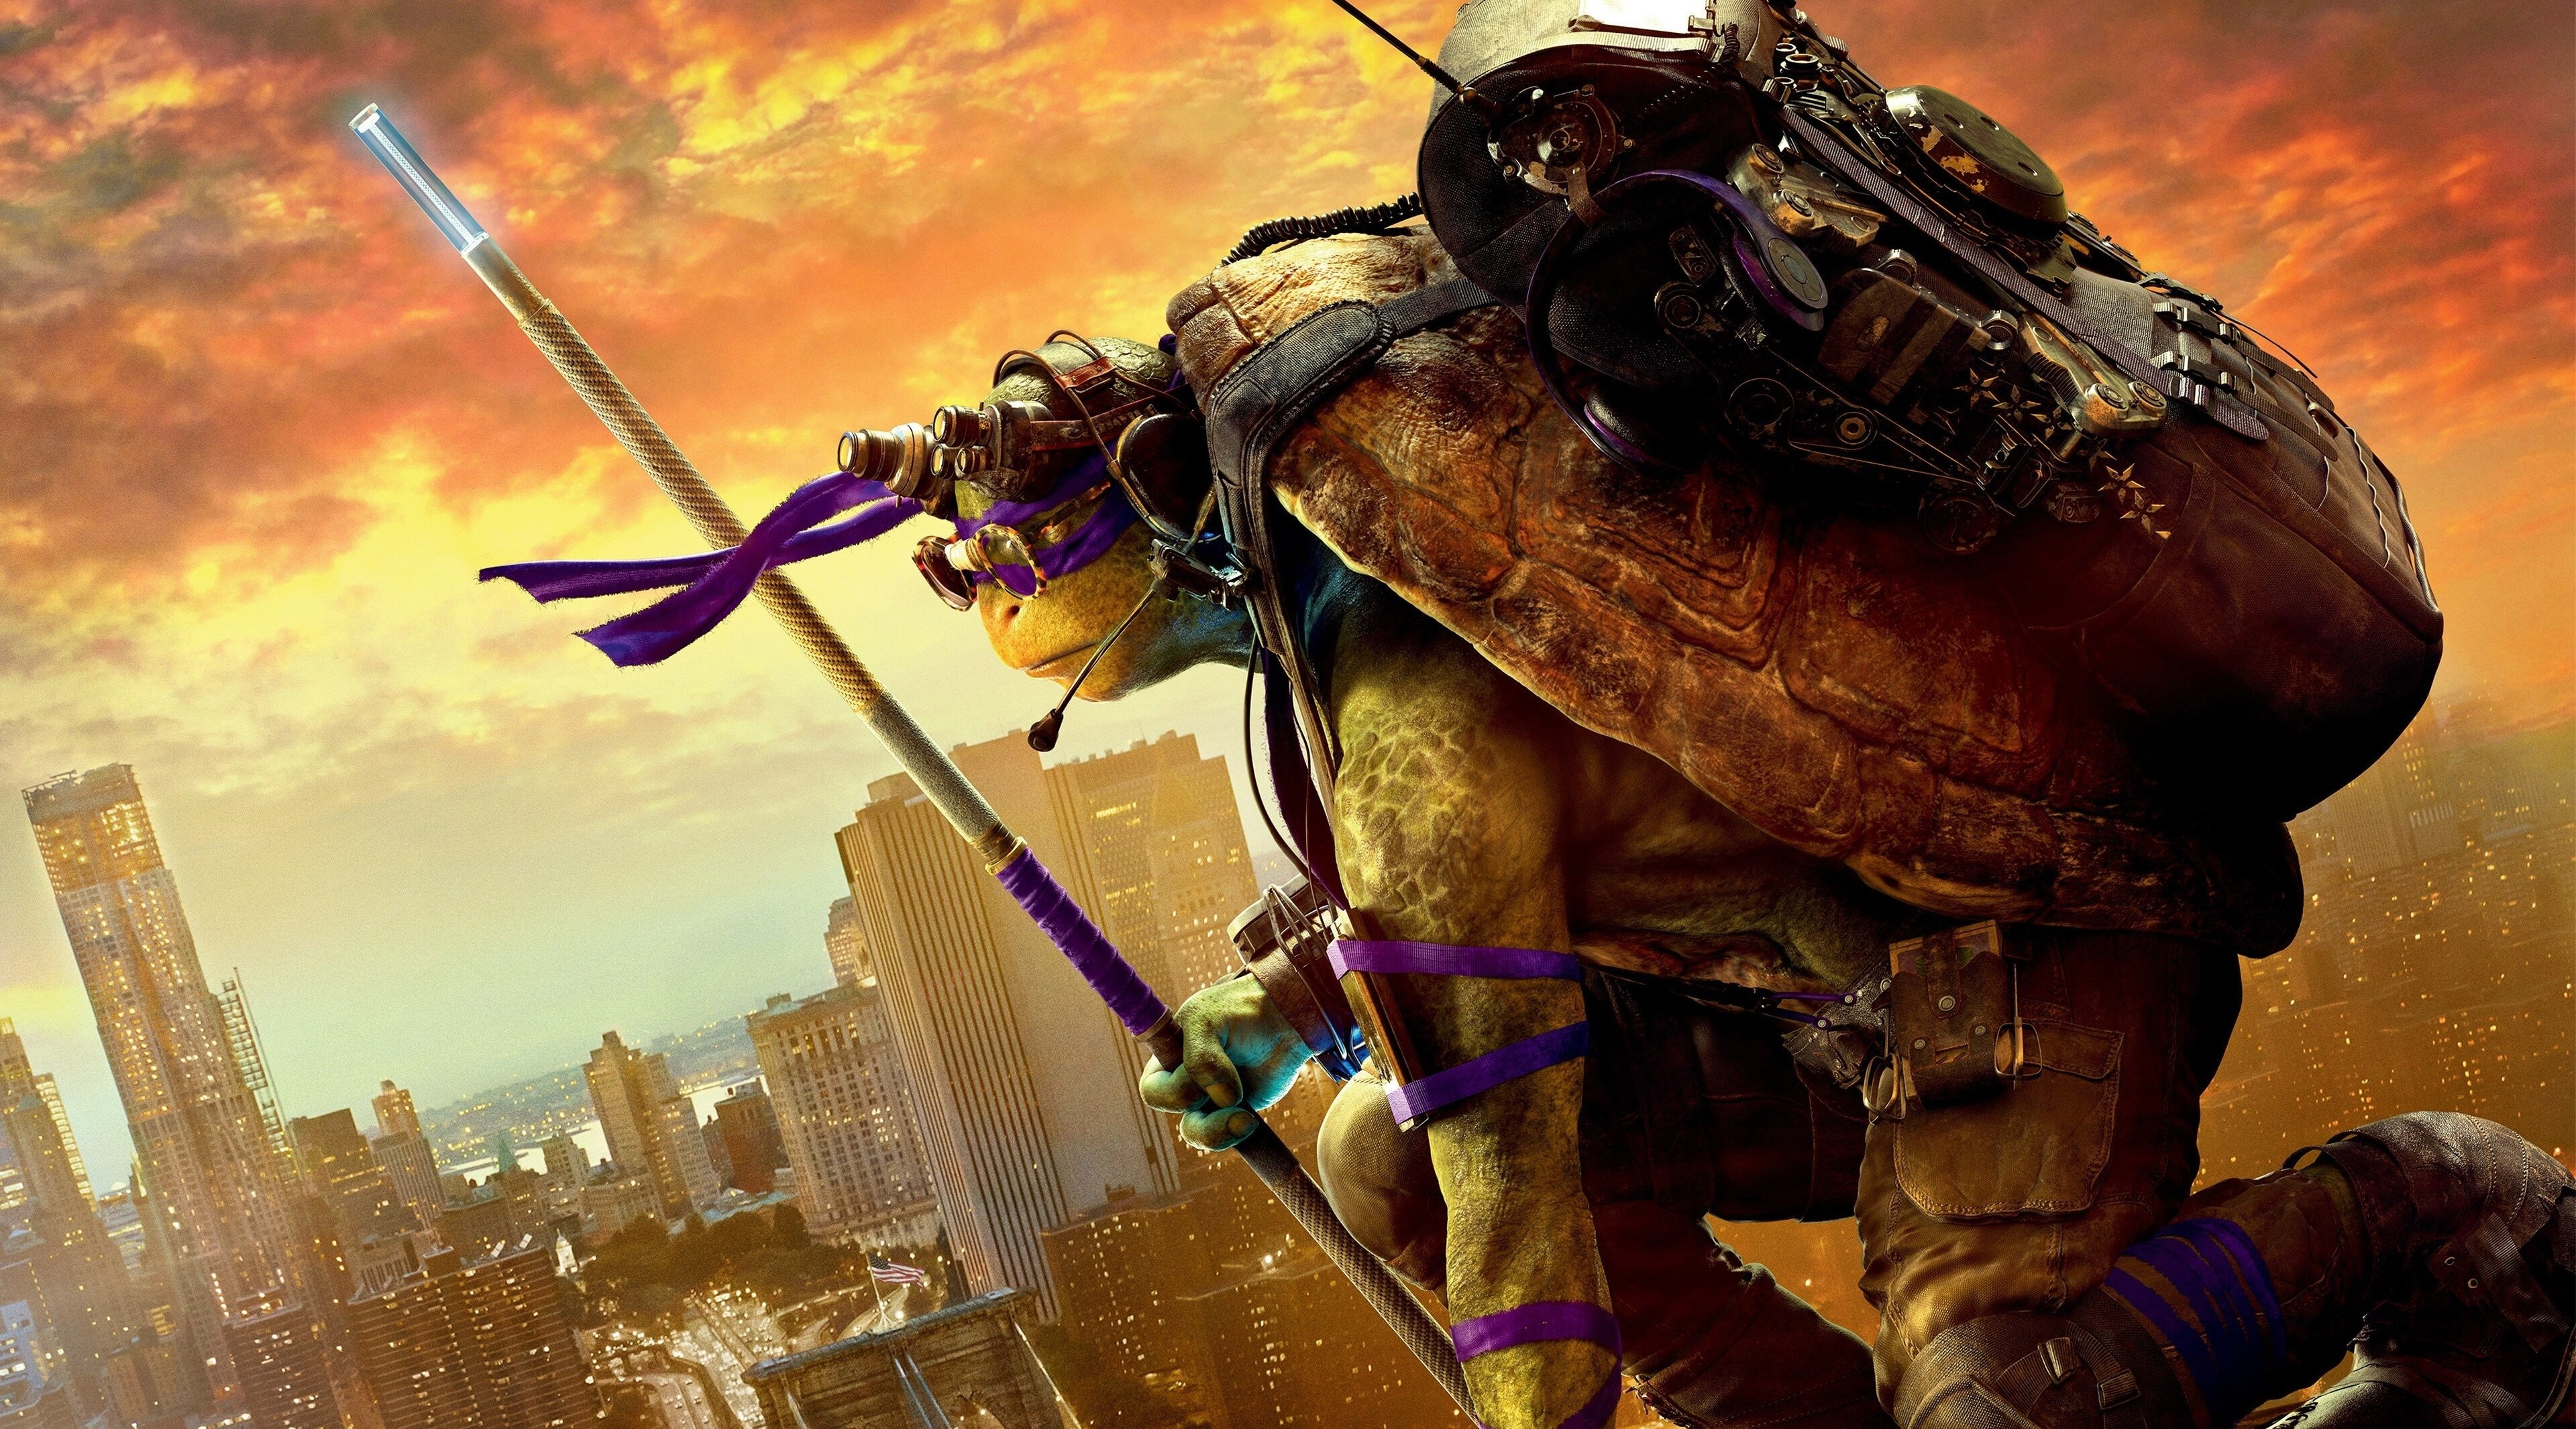 3840x2130 Teenage Mutant Ninja Turtles 2 Wallpapers High Resolution and ... |  Download Wallpaper | Pinterest | Teenage mutant ninja turtles, Teenage  mutant ninja and ...